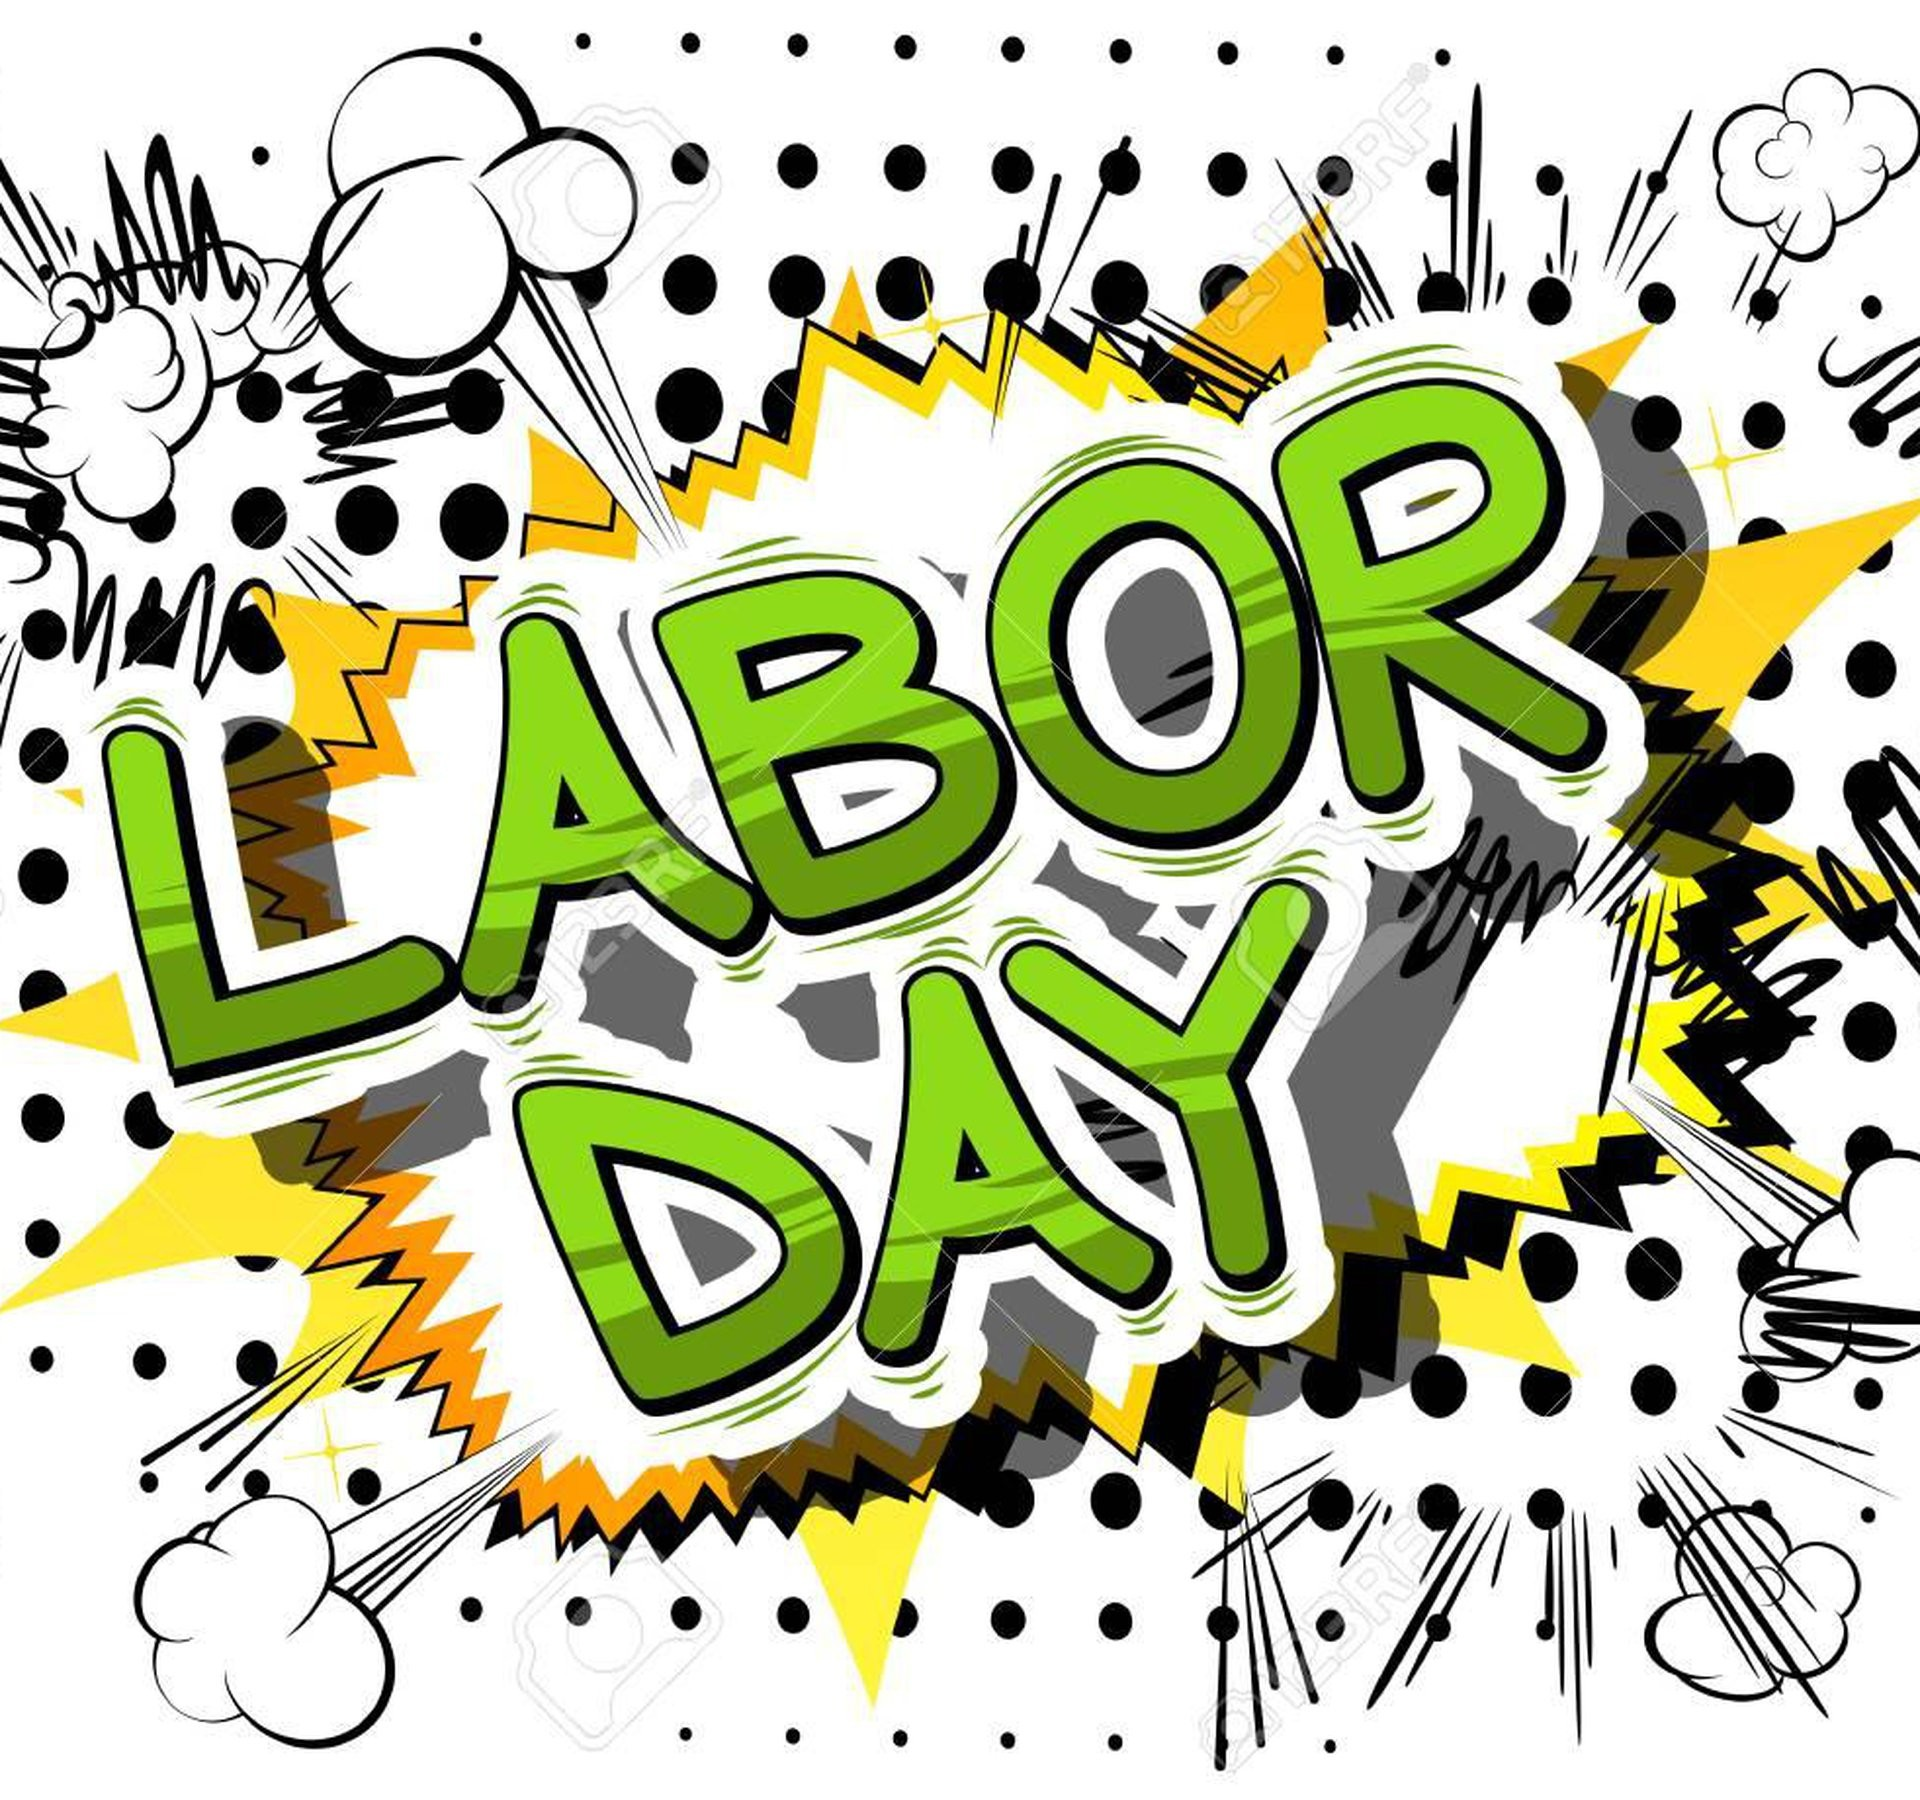 Res: 1920x1800, HDTV Happy Labor Day Wallpaper : Holidays Wallpaper for Phone & Desktop  Backgrounds Collections